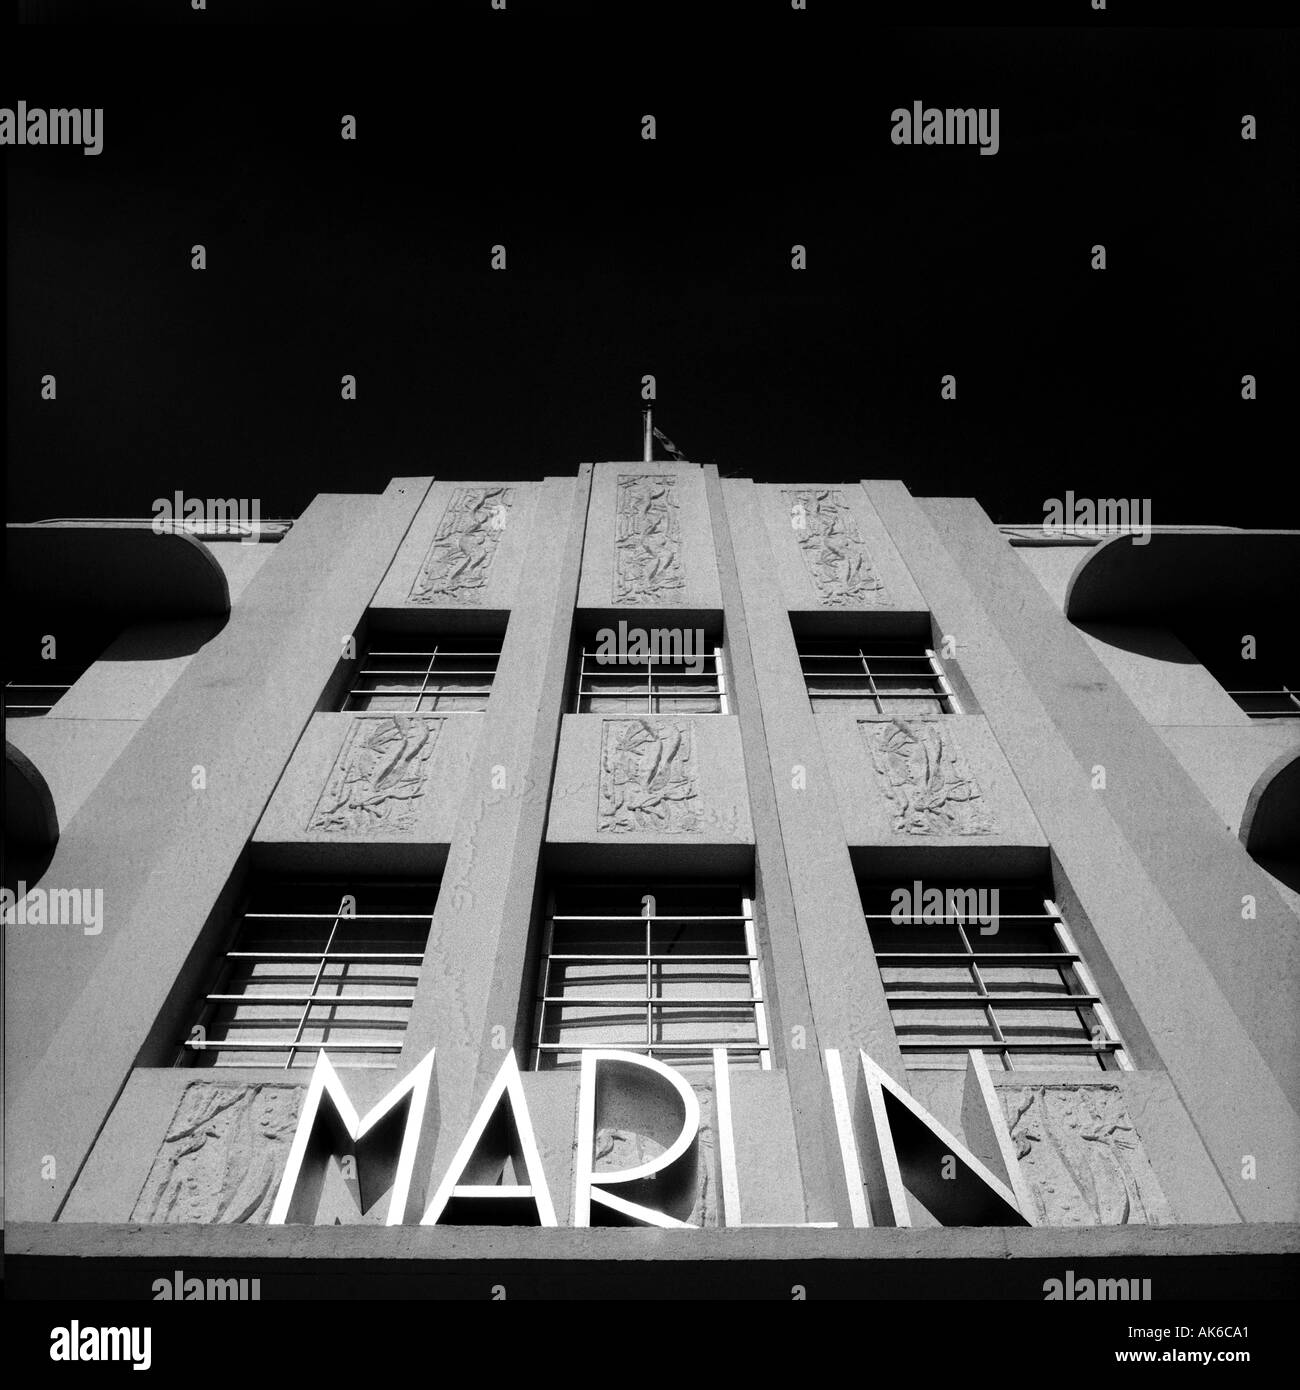 Fassade des Hotels Marlin in s Miami South Beach Art Deco DistrictStockfoto